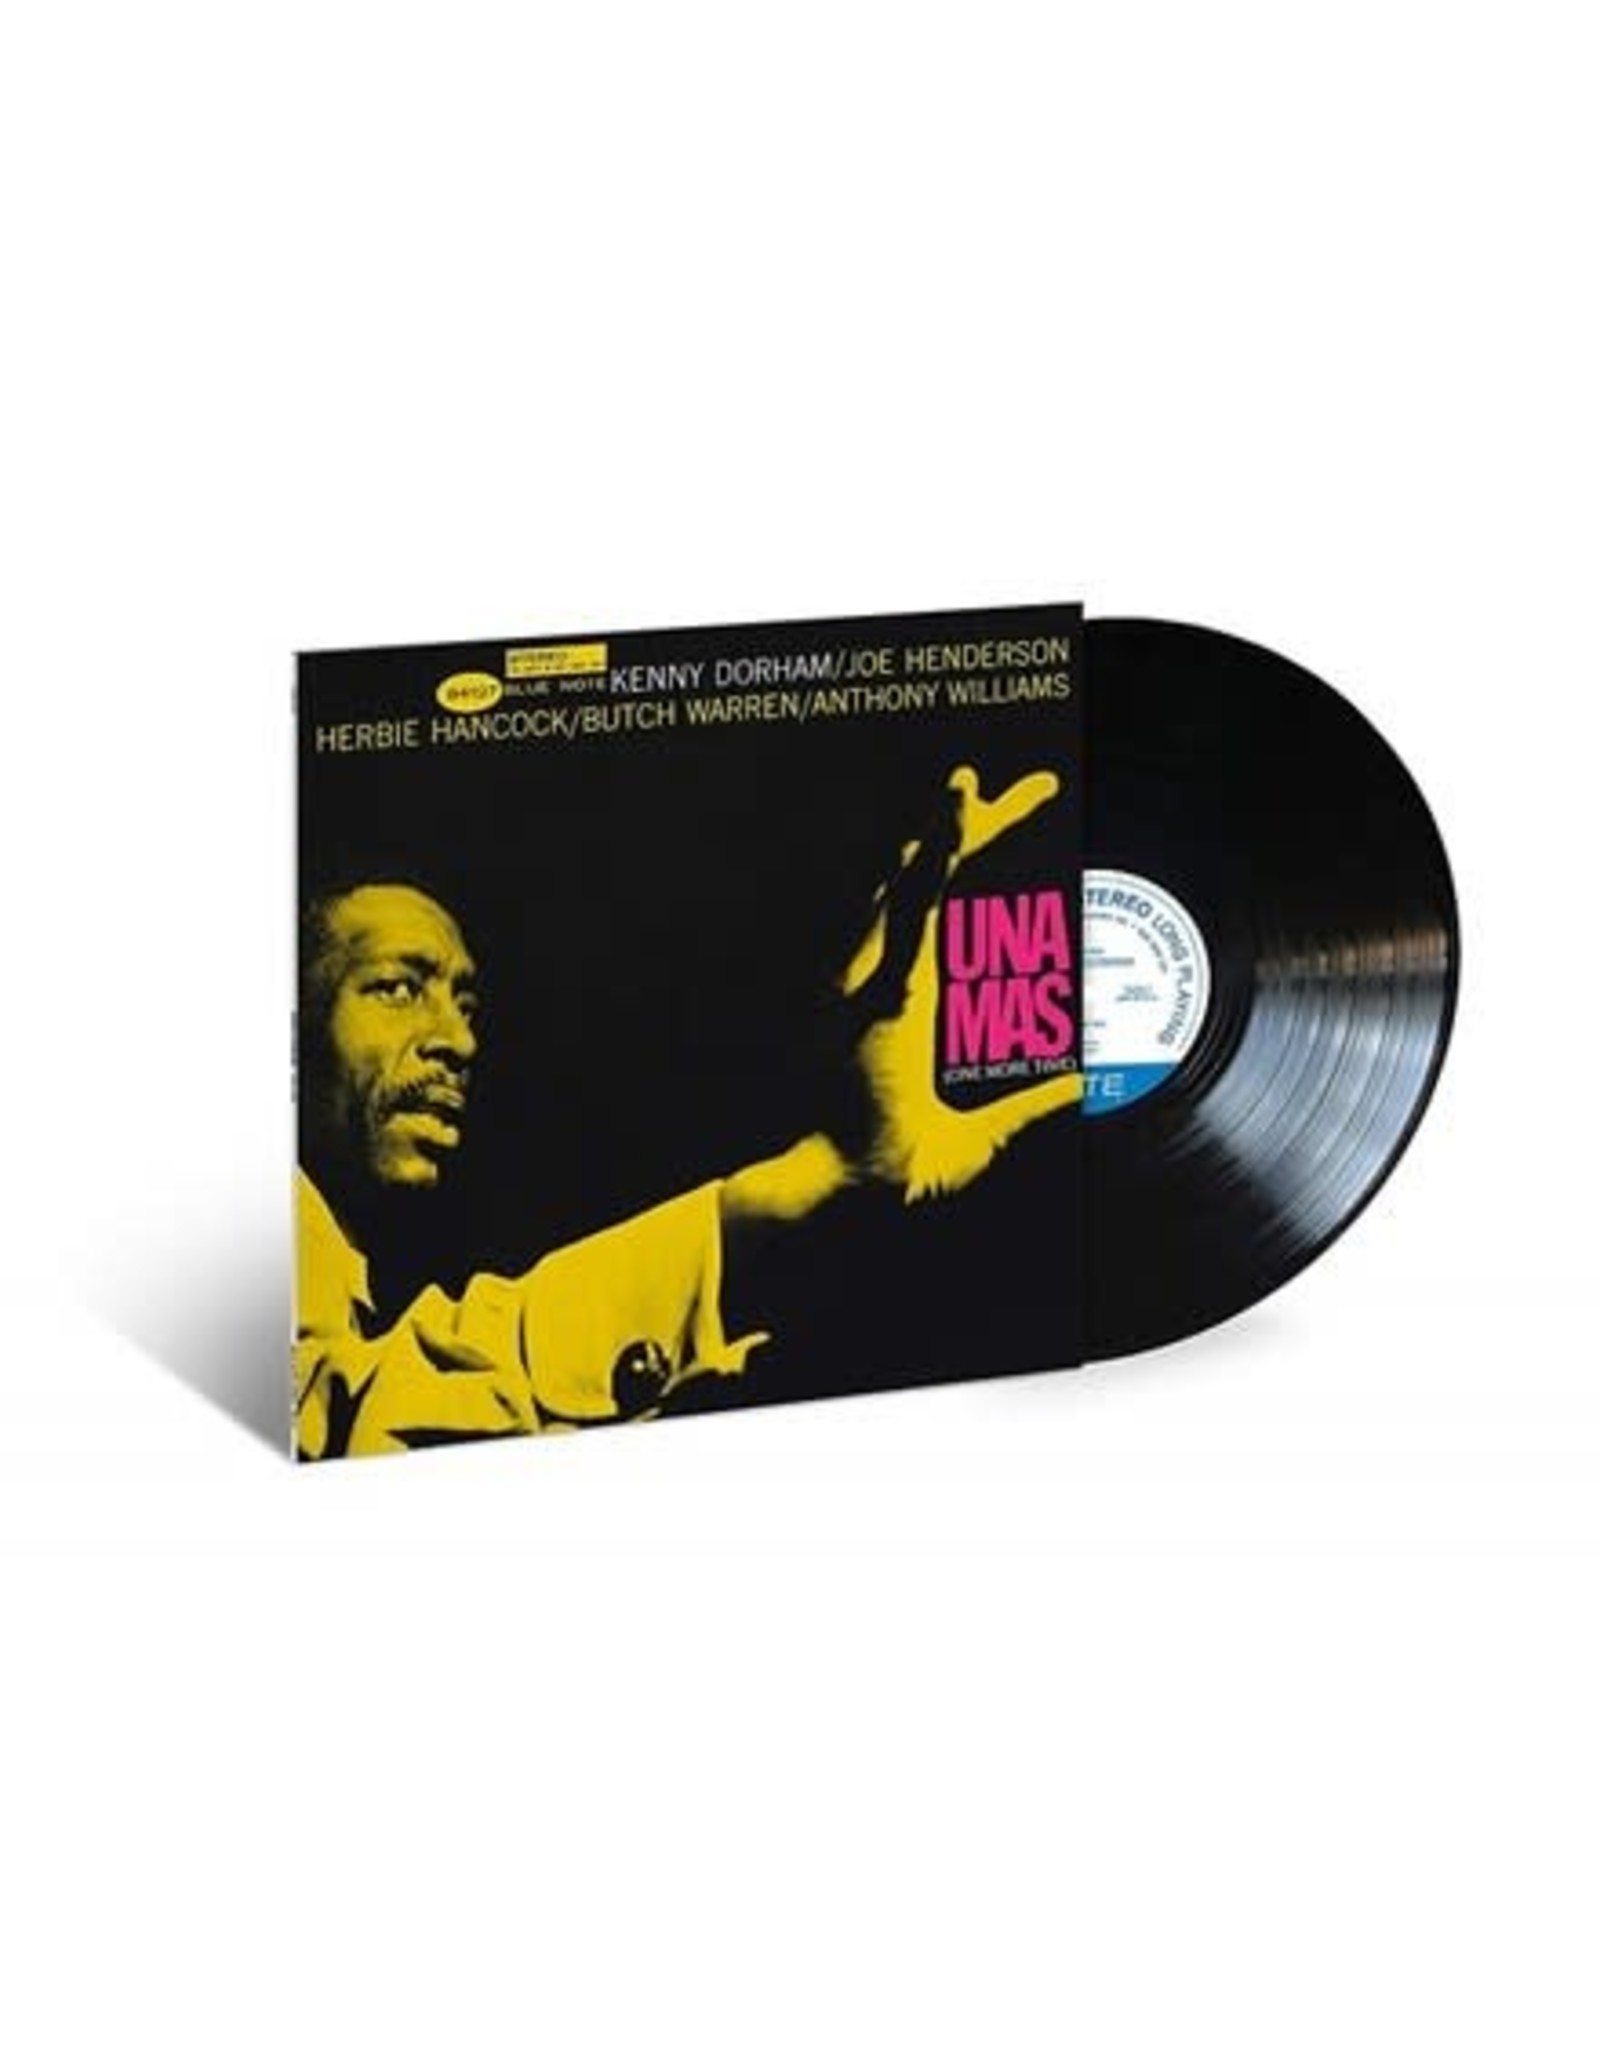 Blue Note Dorham, Kenny: Una Mas LP